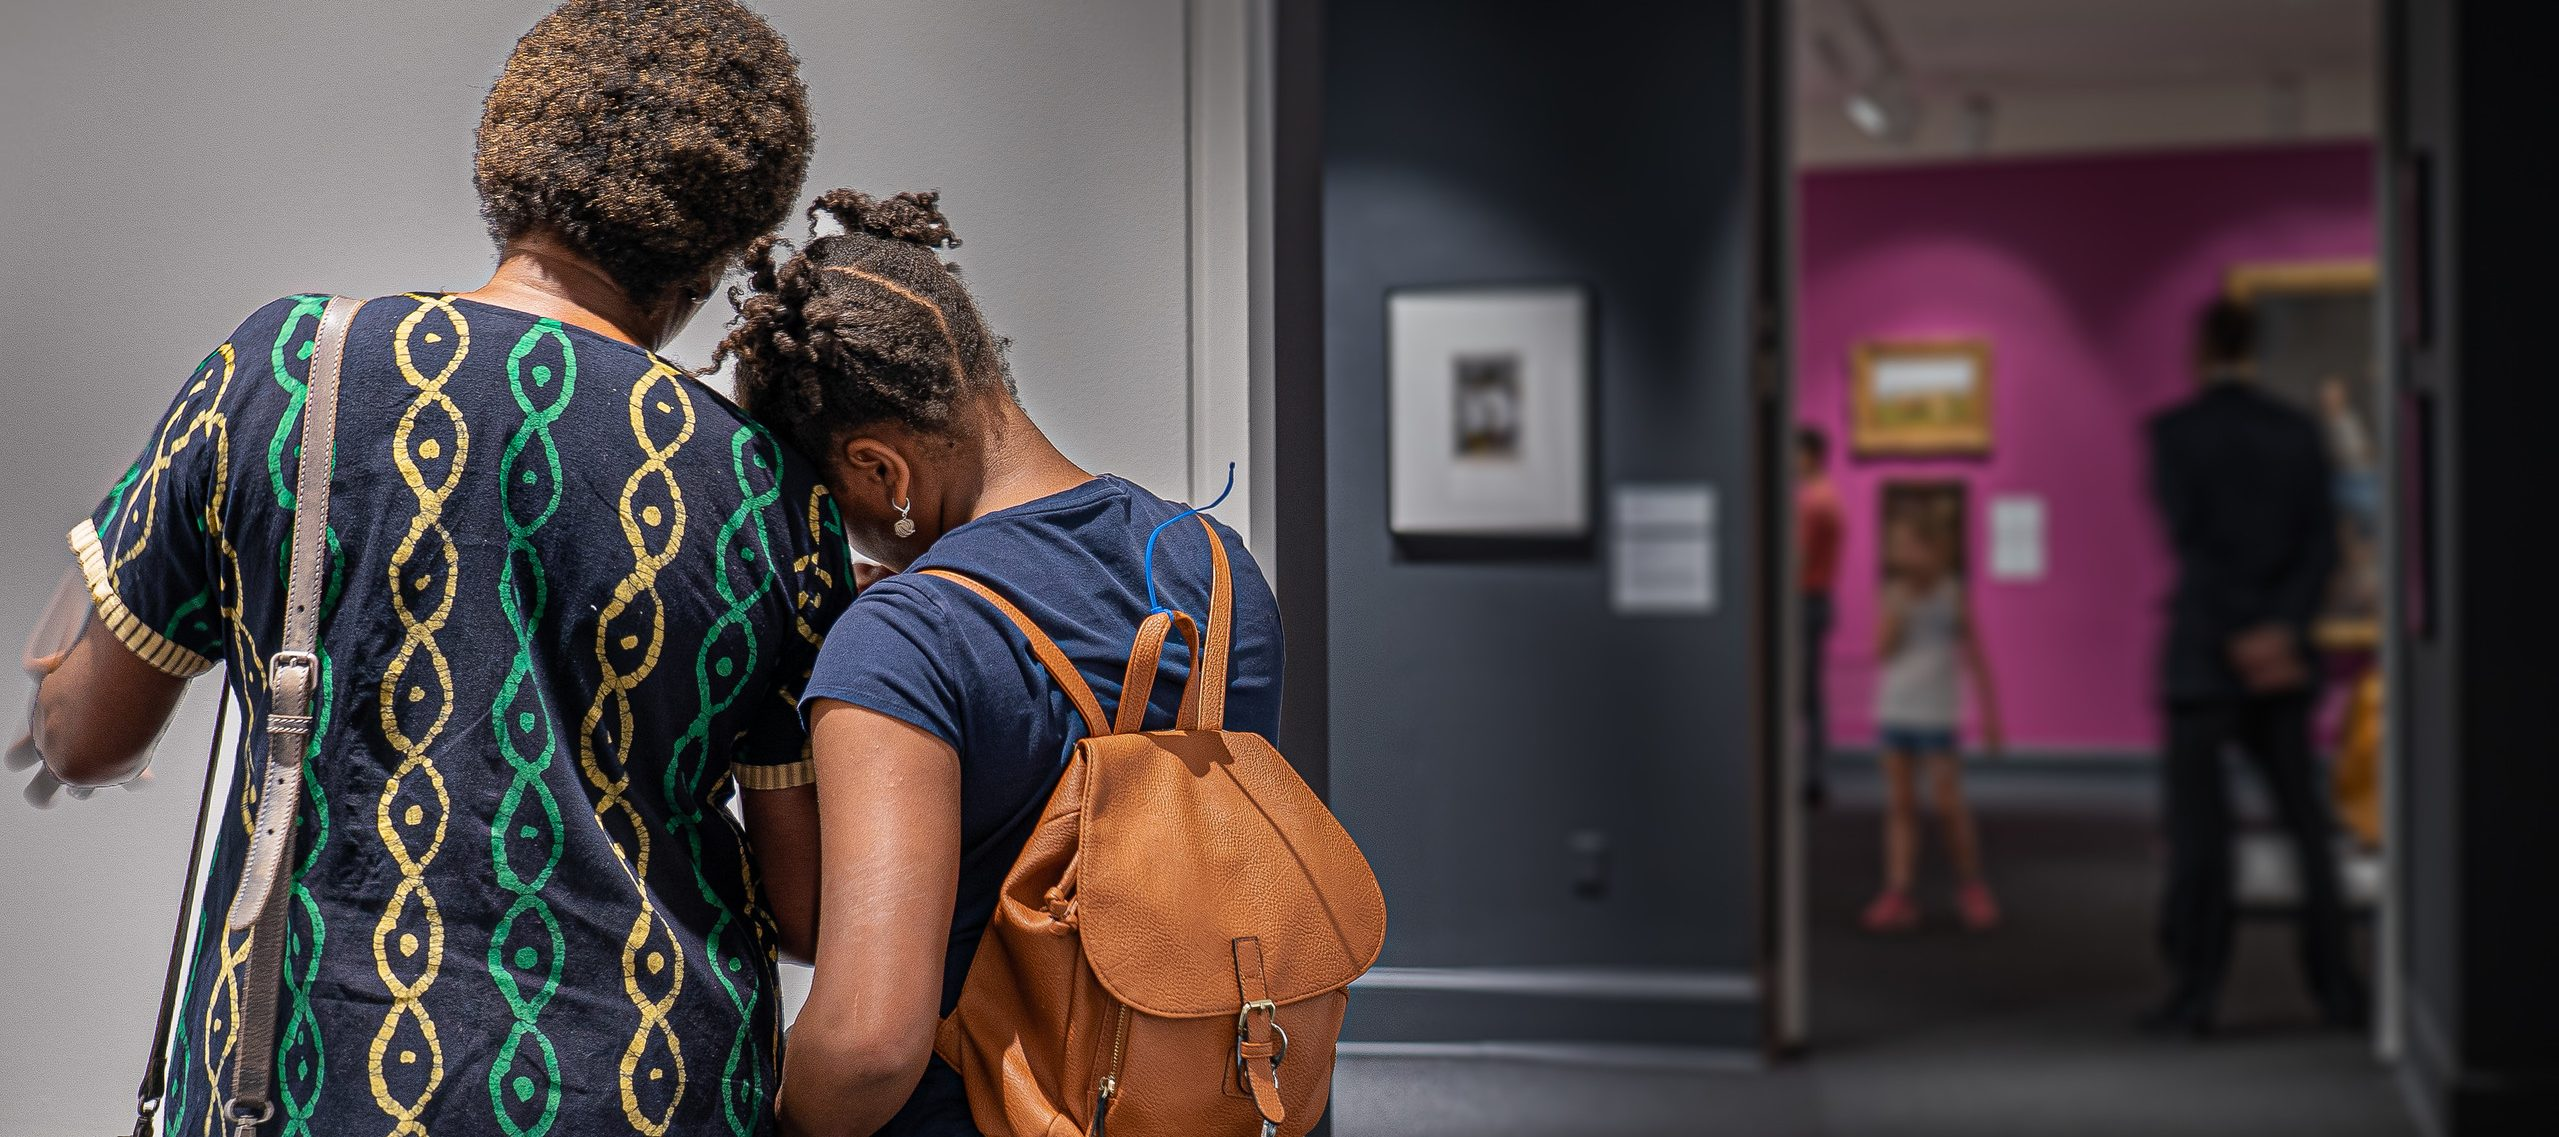 A middle aged, medium dark-skinned woman and a school age medium dark skinned girl face away from the camera and lean into each other affectionately while viewing artwork.